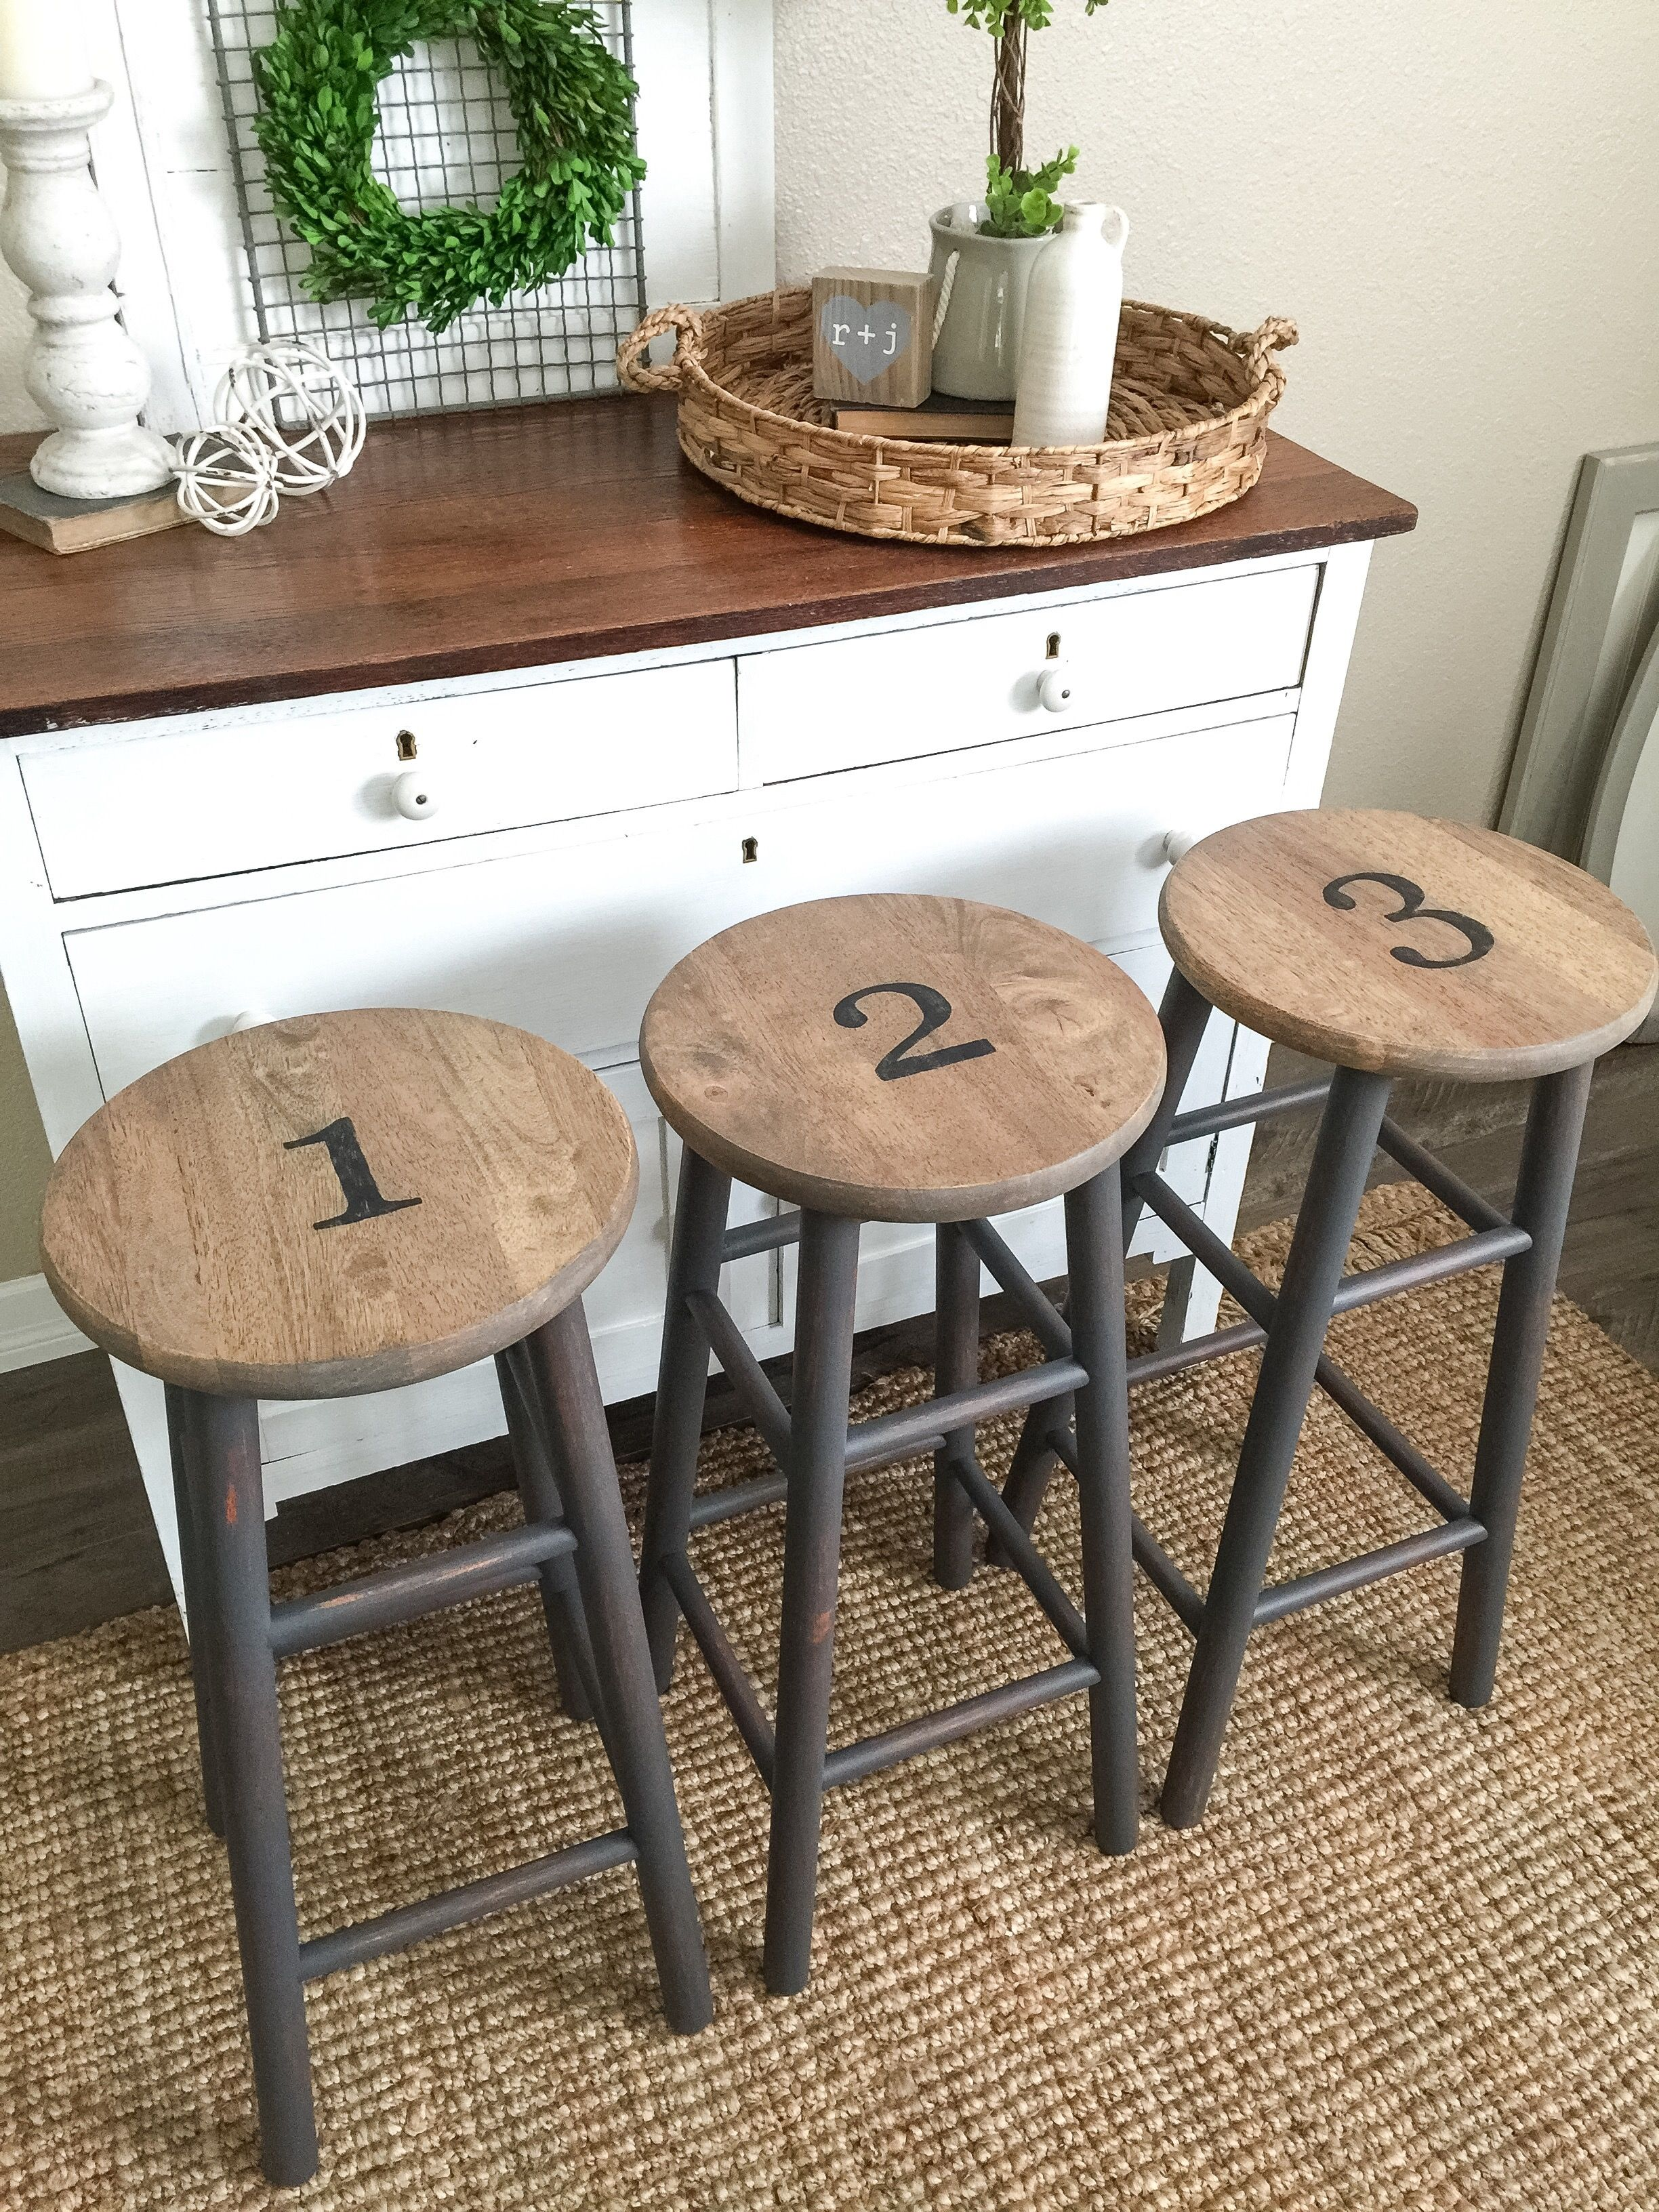 die besten 25 farmhouse stools ideen auf pinterest rustikale thekenst hle barhocker. Black Bedroom Furniture Sets. Home Design Ideas